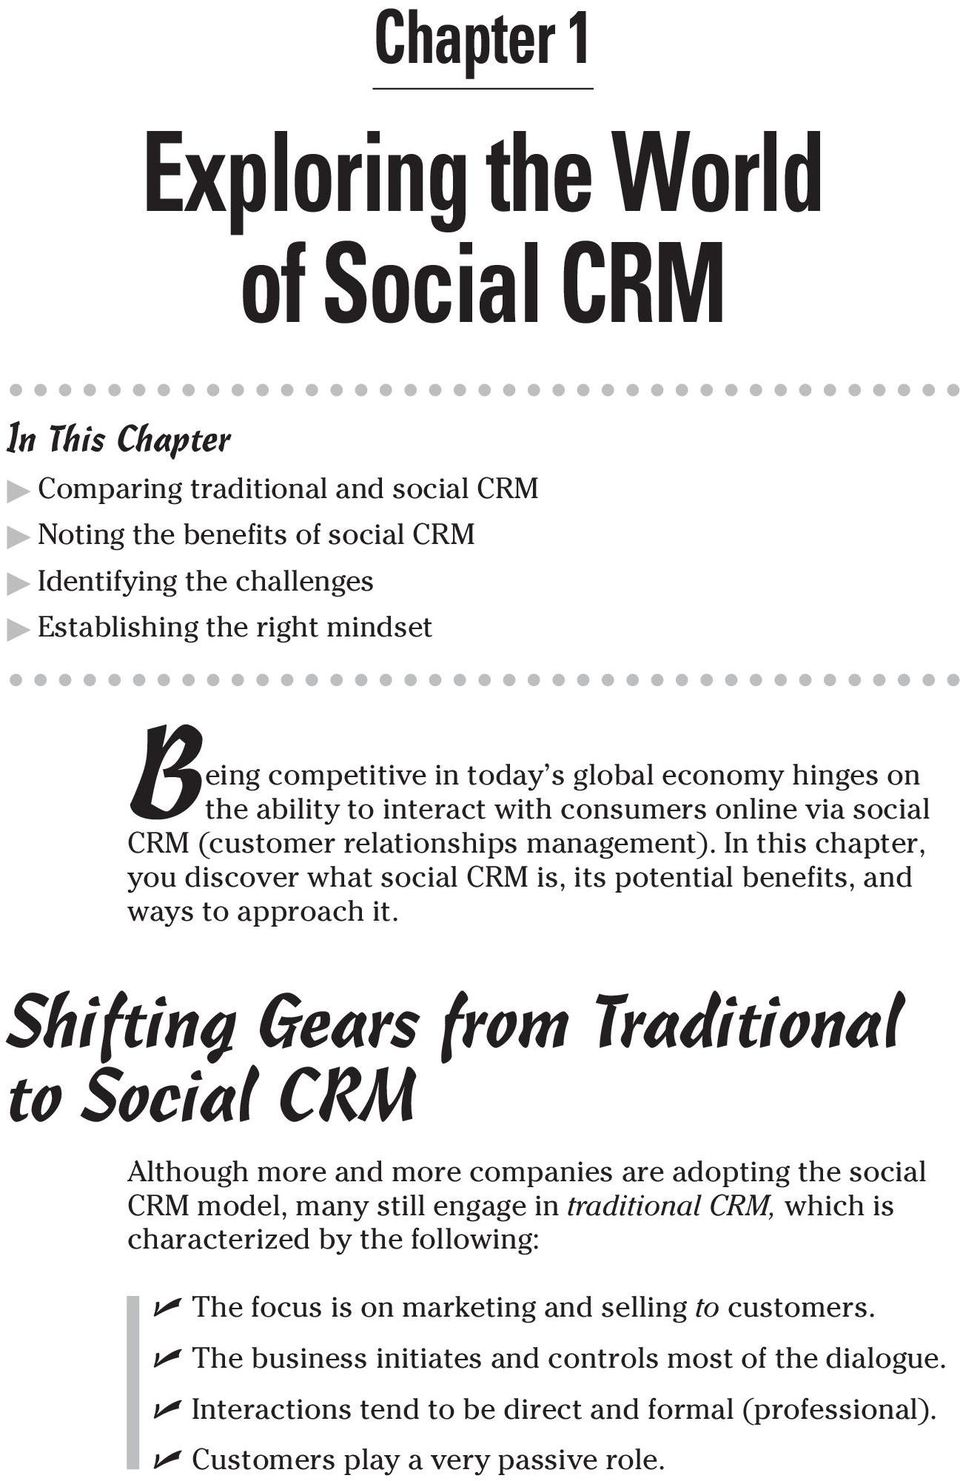 In this chapter, you discover what social CRM is, its potential benefits, and ways to approach it.